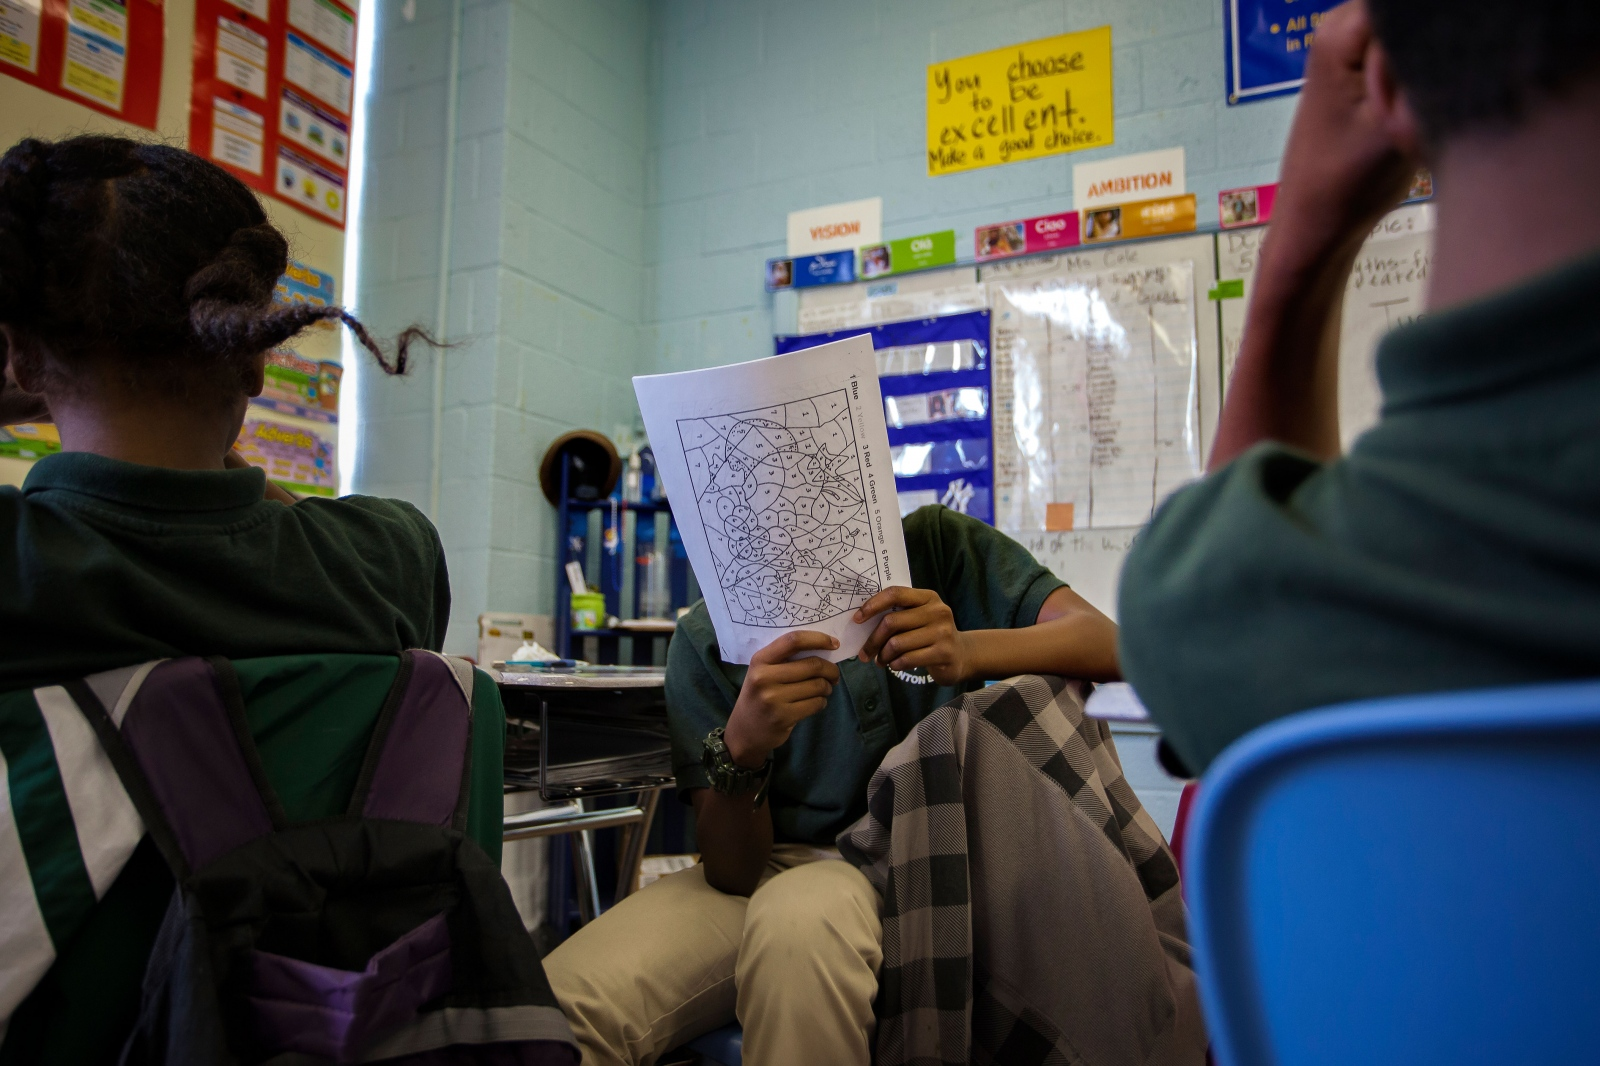 Students go over homework together in math class. Their teacher asks the answers to the questions and the students are asked to quietly raise their hands to respond. However, the rambunctious young kids often yell out the answers in excitement.